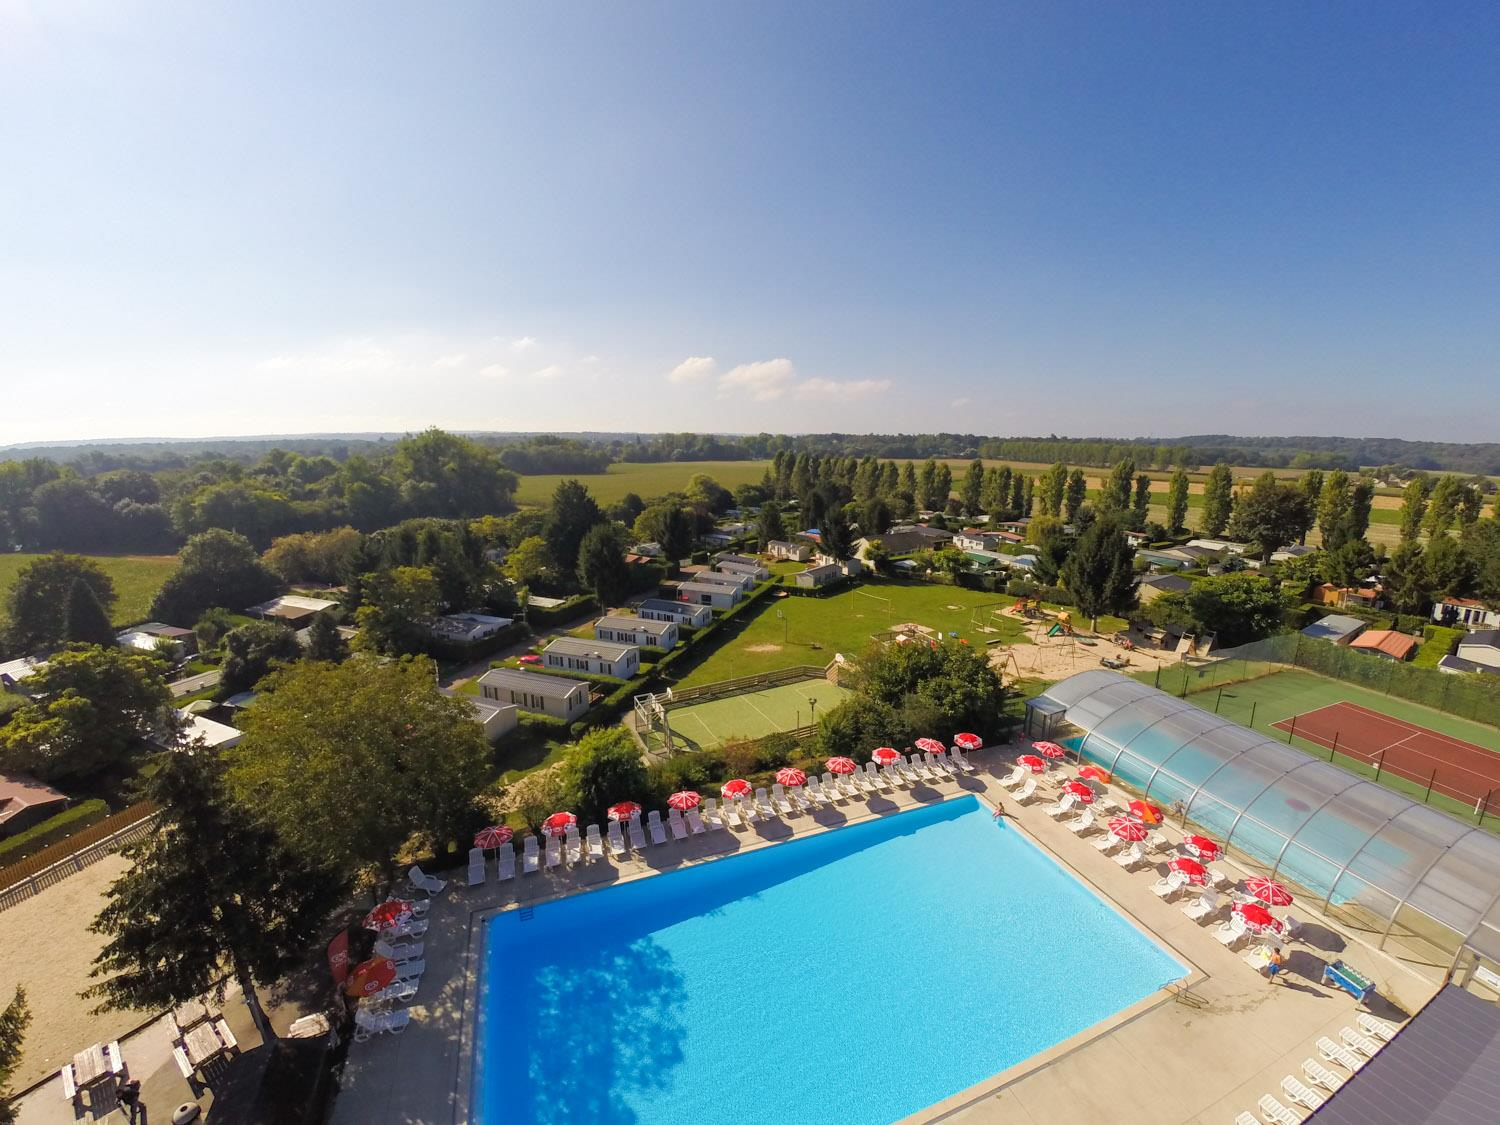 Establishment Capfun - Camping Le Village Parisien**** - Varreddes